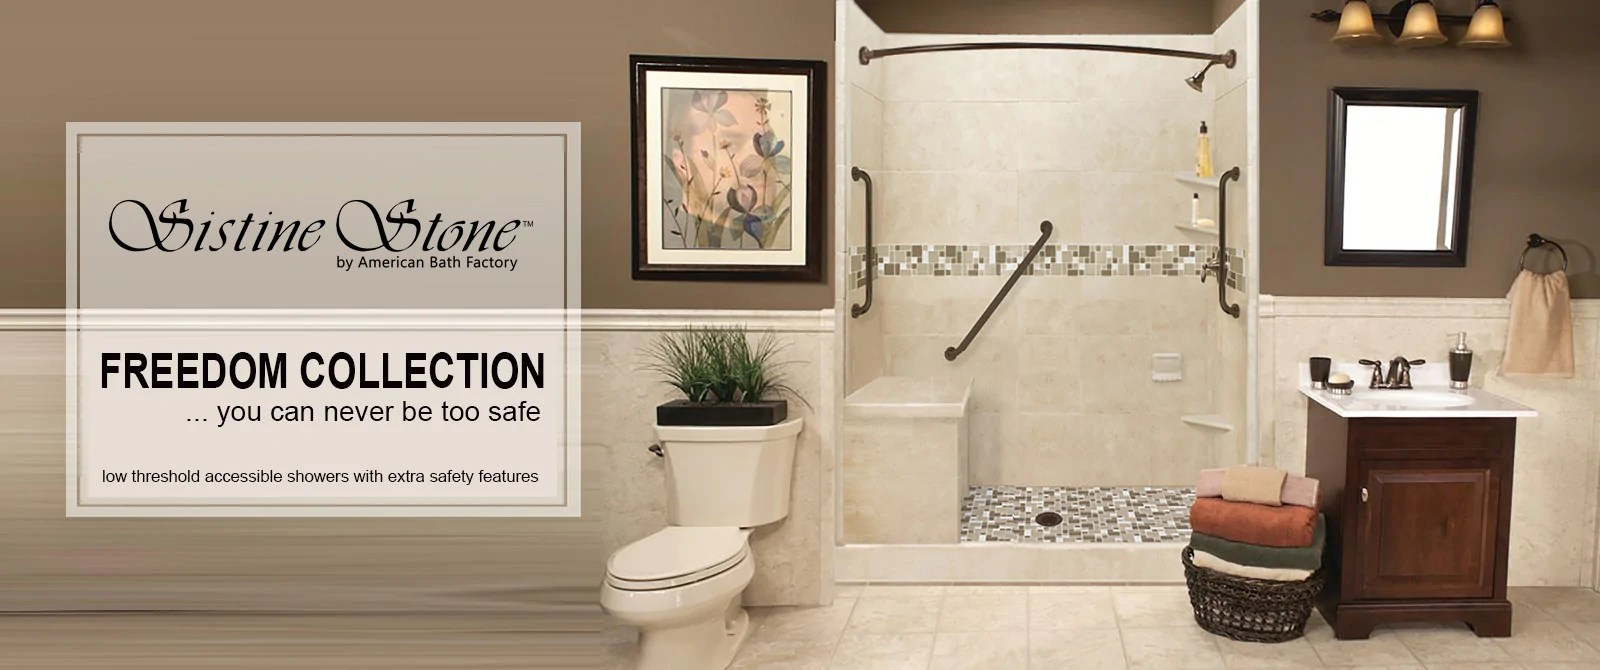 American Bath Factory Providing Shower Kits And Bathtubs For